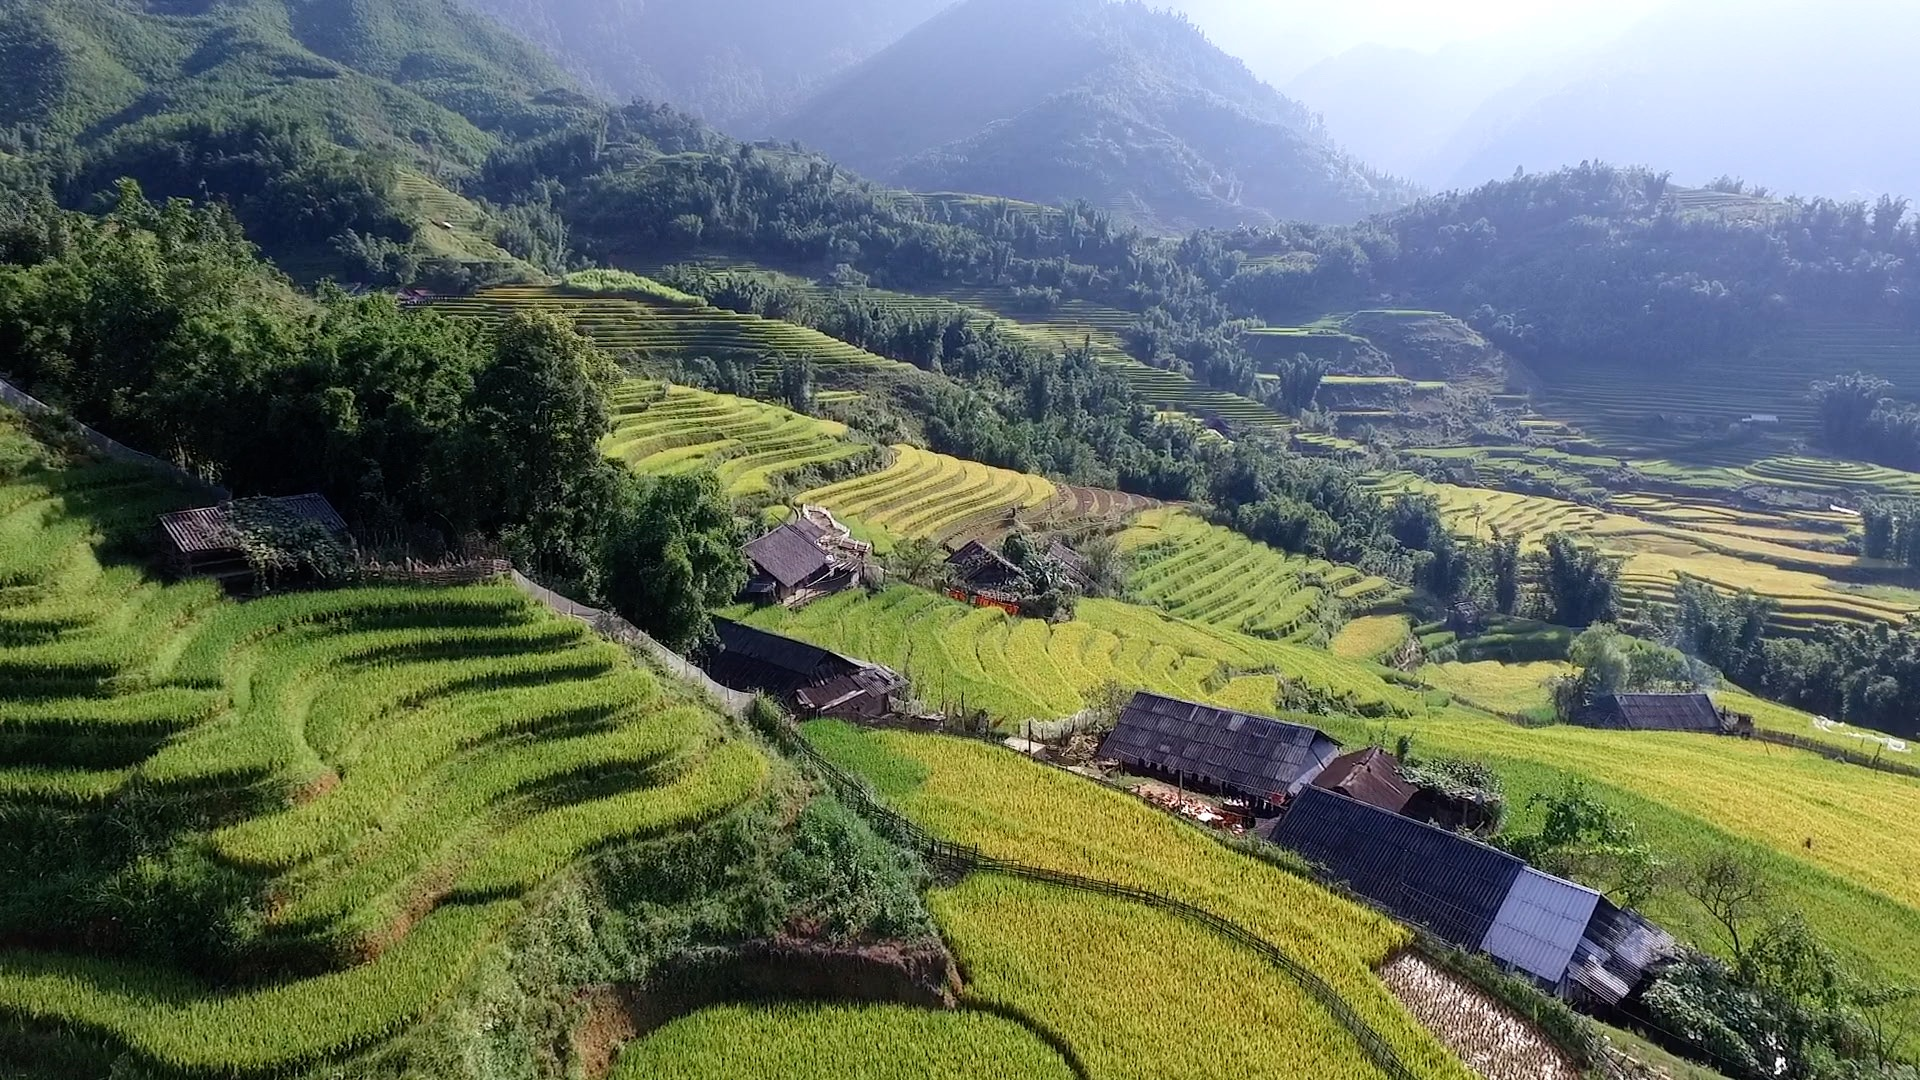 In the mountain regions of Northern Vietnam children from ethnic minority groups are particularly vulnerable to traffickers.